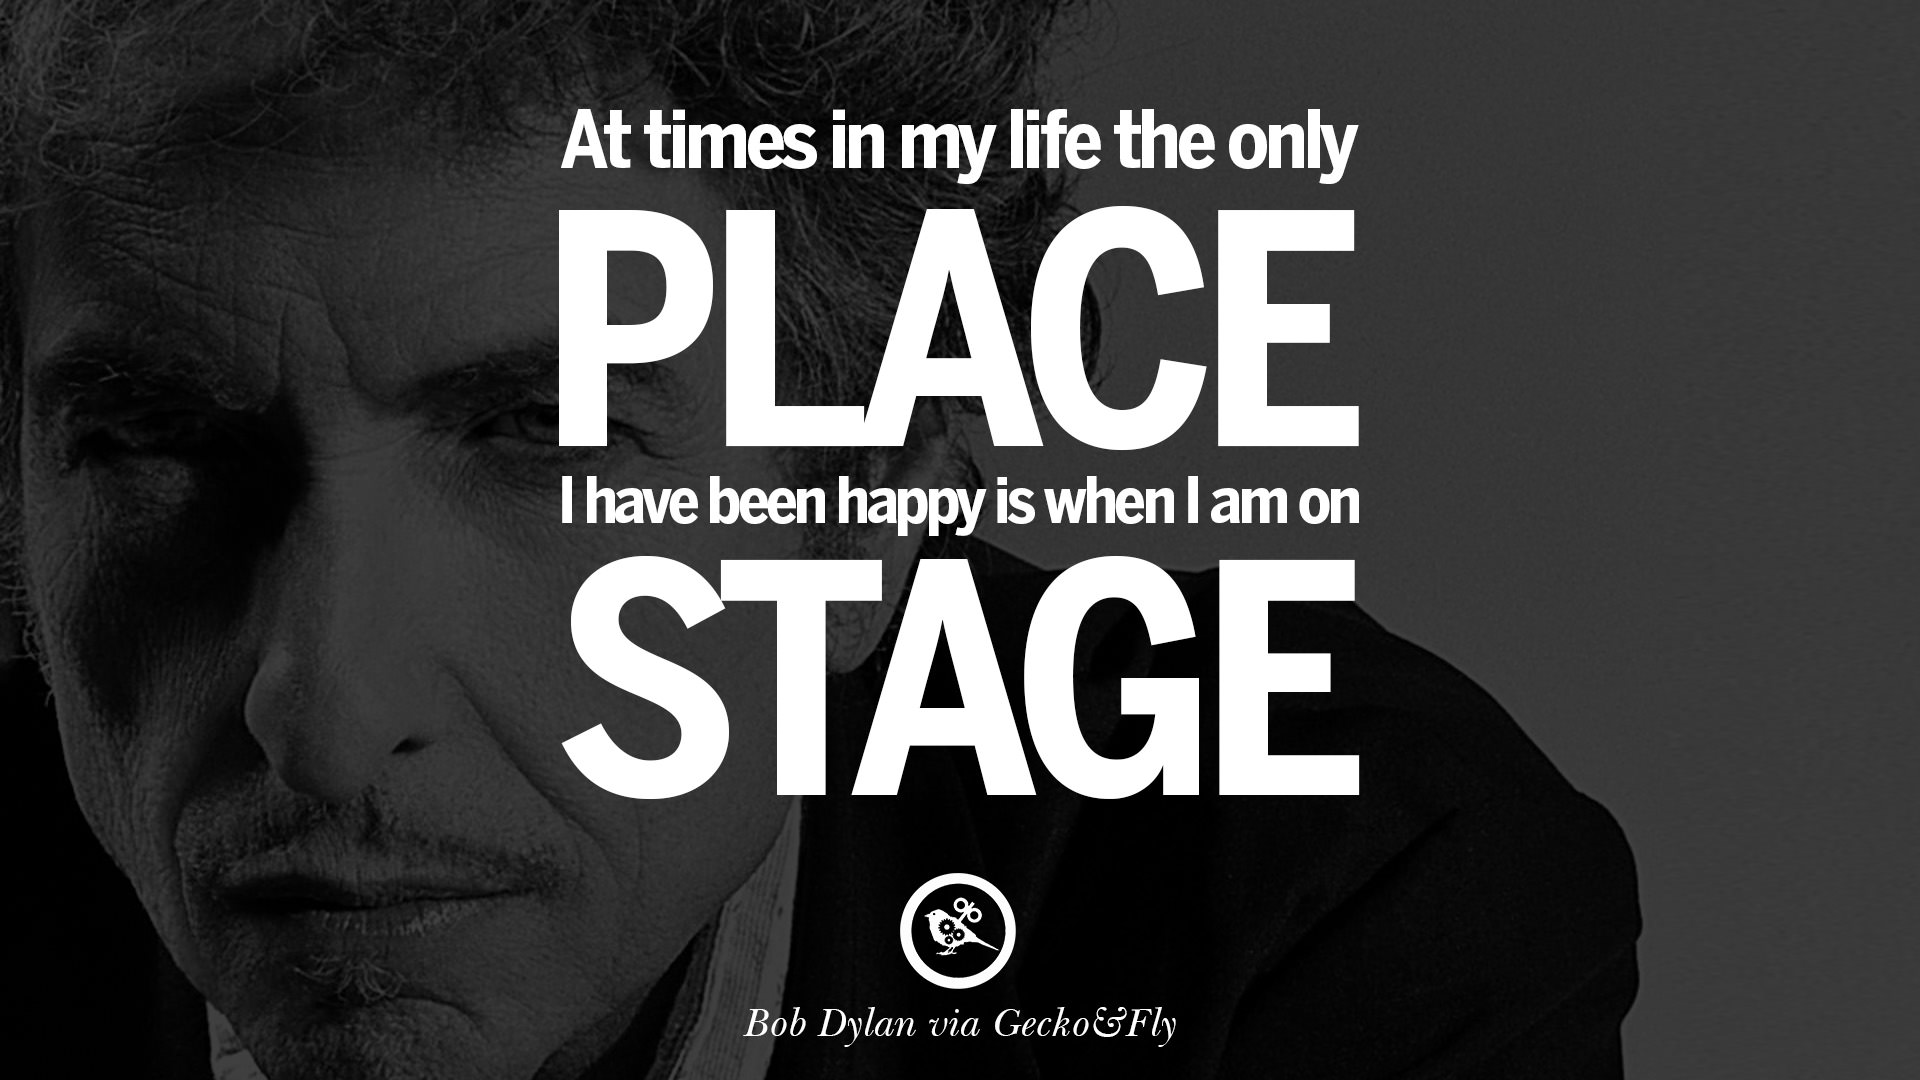 27 Inspirational Bob Dylan Quotes On Freedom, Love Via His -5074